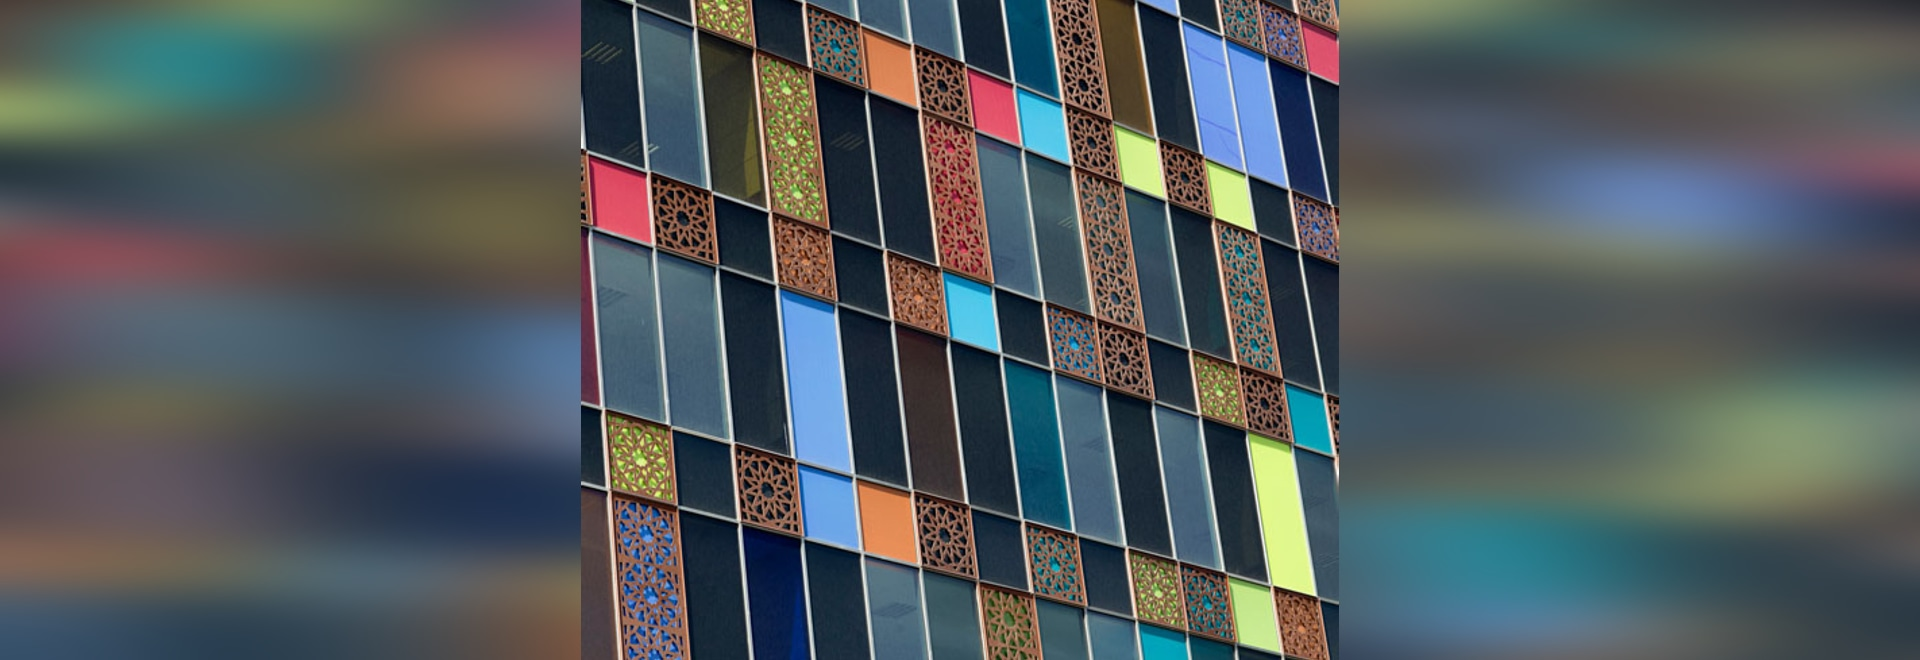 The decorative, polychrome exterior of industrial glass company Kaveh's Tehran office, which was completed in 2015, also broadcasts what the firm manufactures